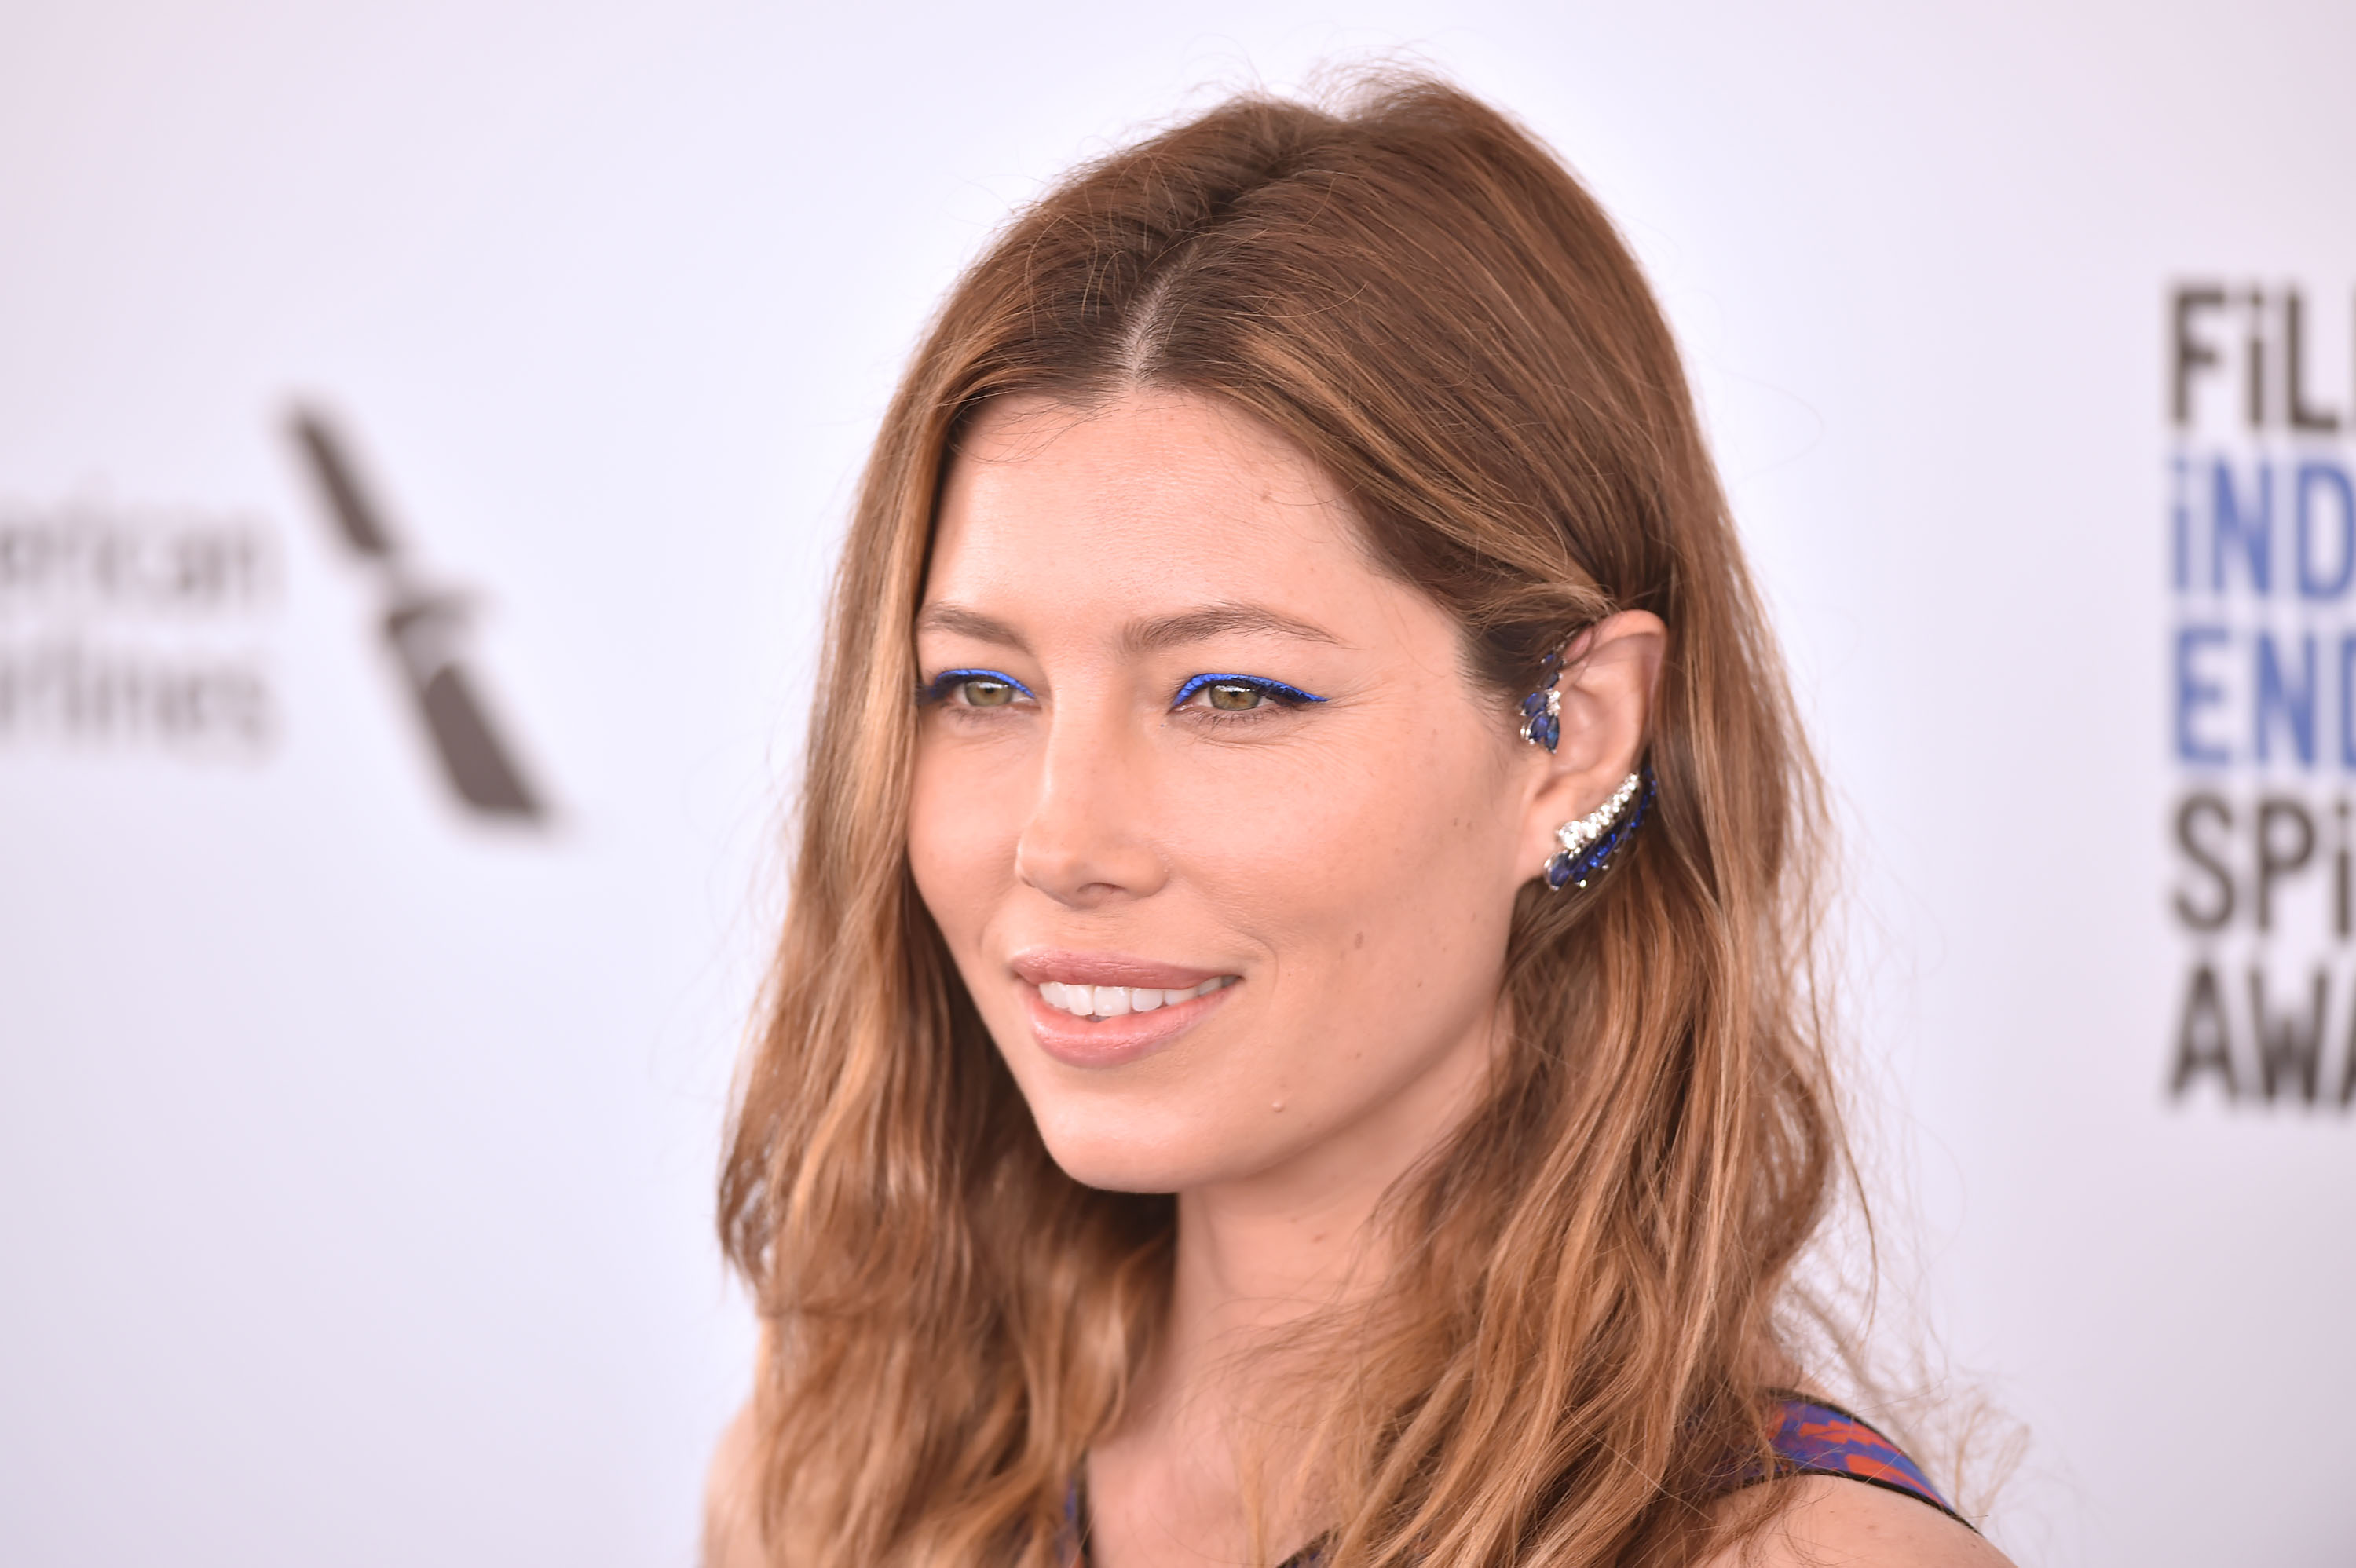 Get excited, Jessica Biel *might* be coming back to TV!